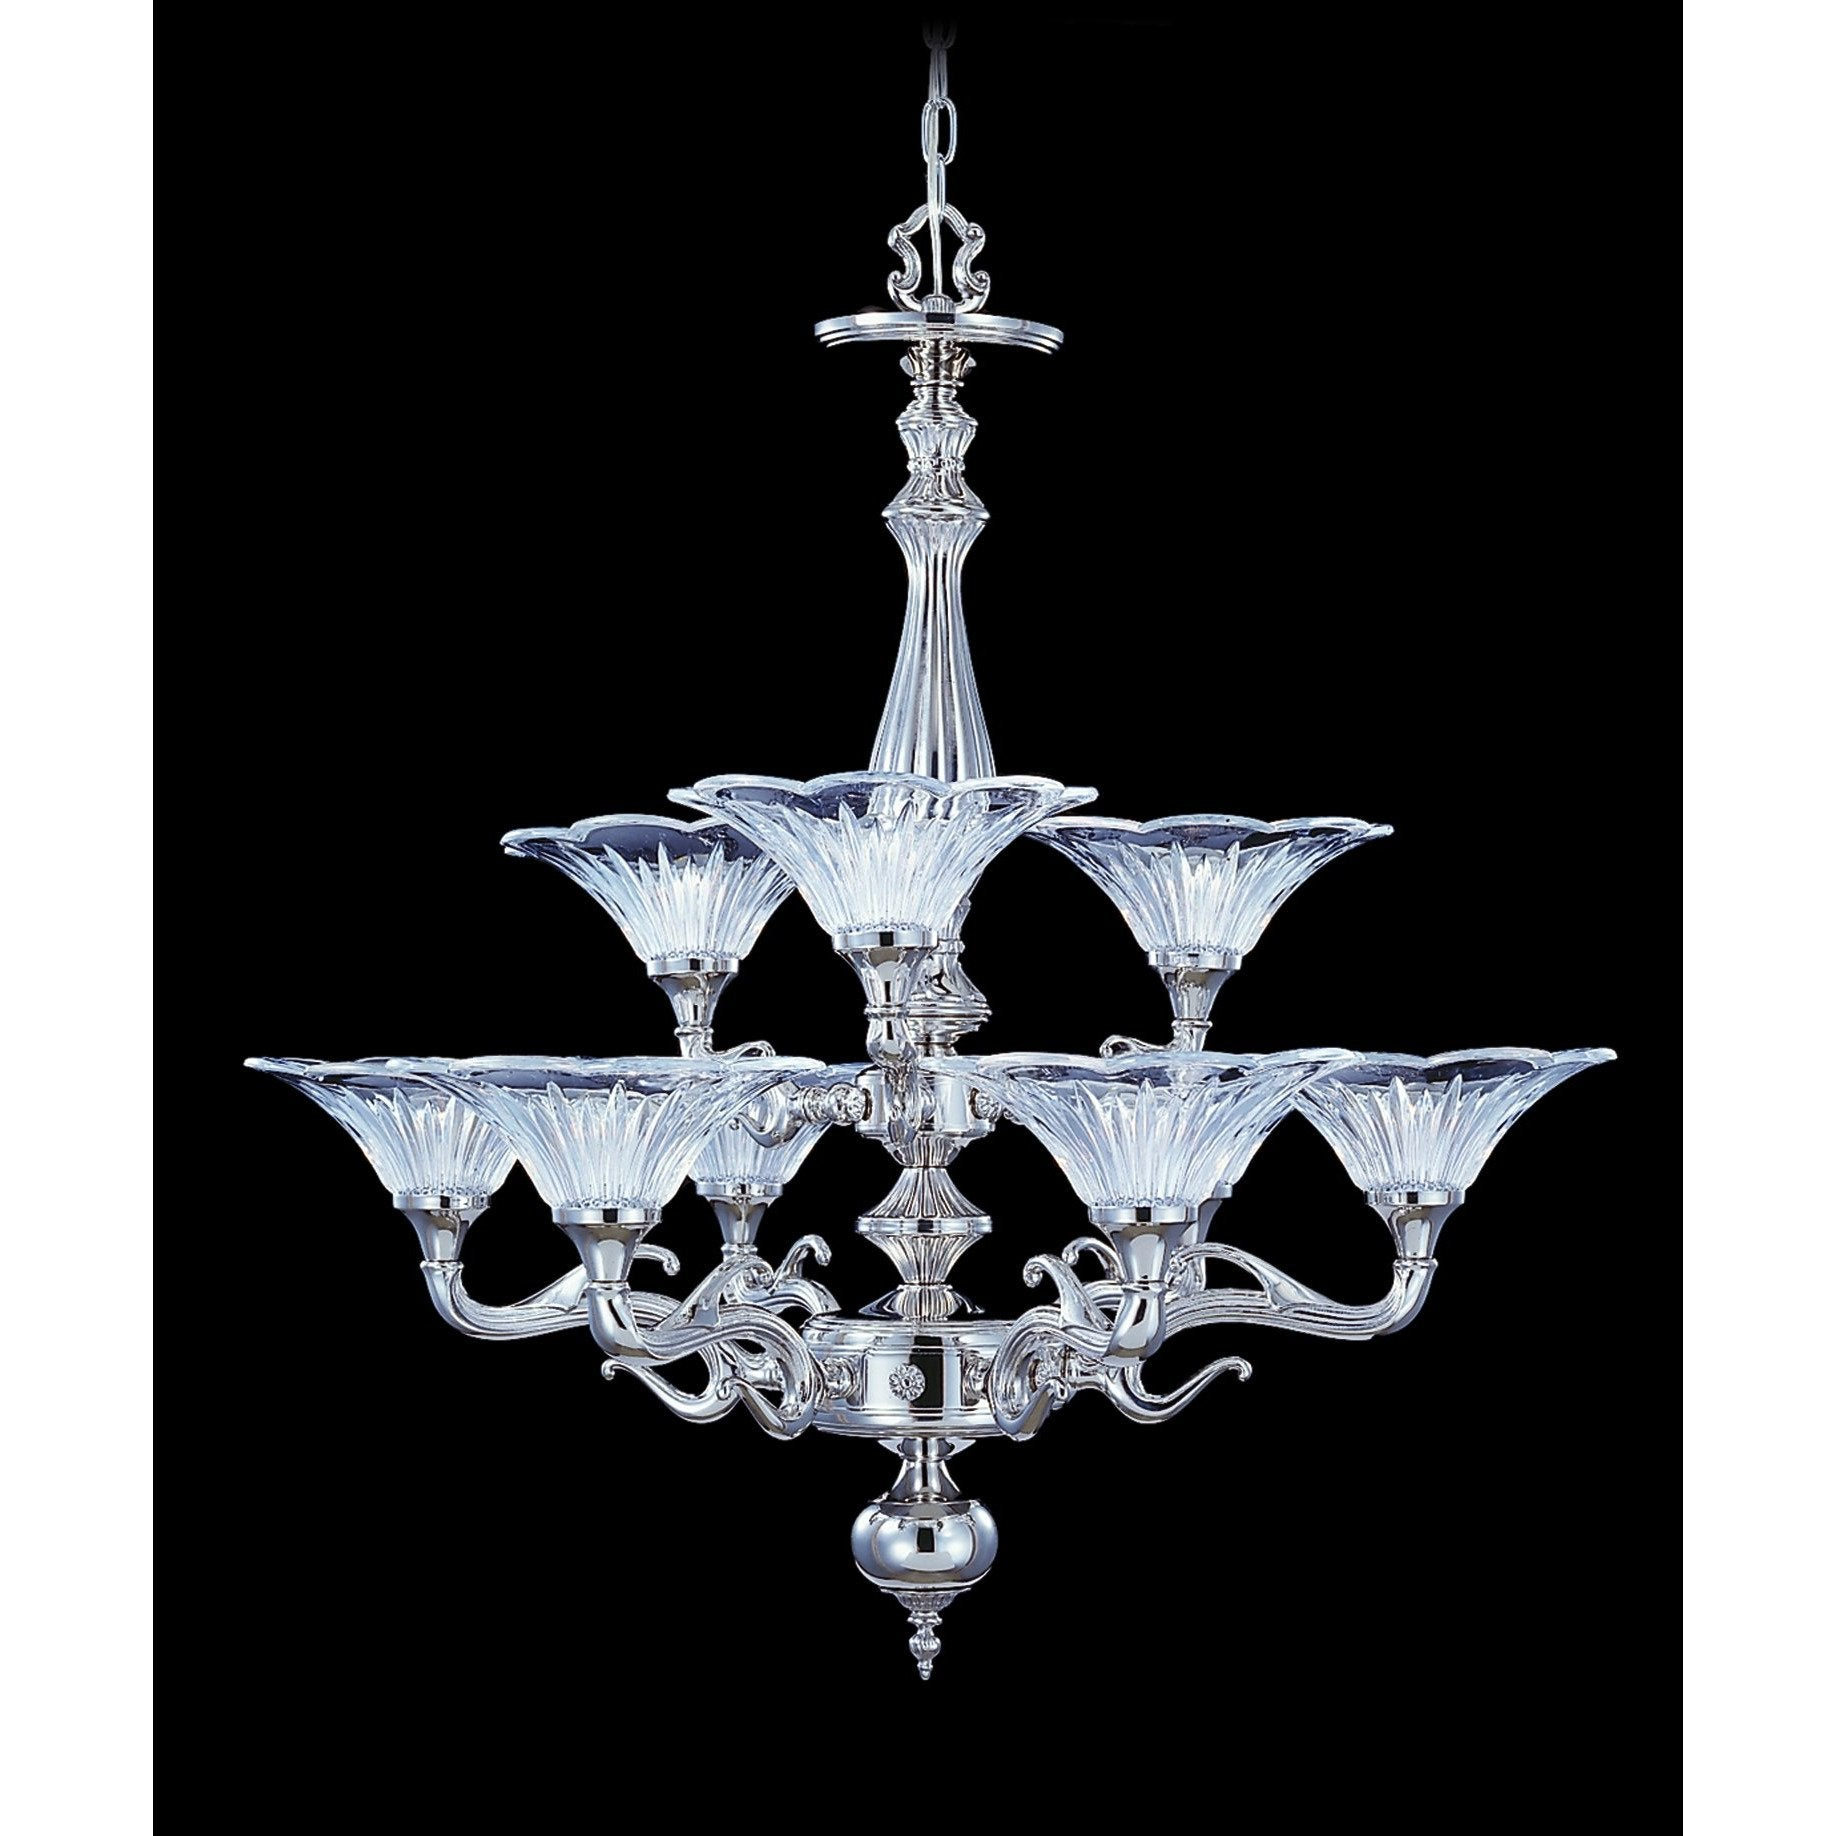 Framburg Chandeliers Polished Silver 9-Light Polished Silver Geneva Dining Chandelier by Framburg 8629